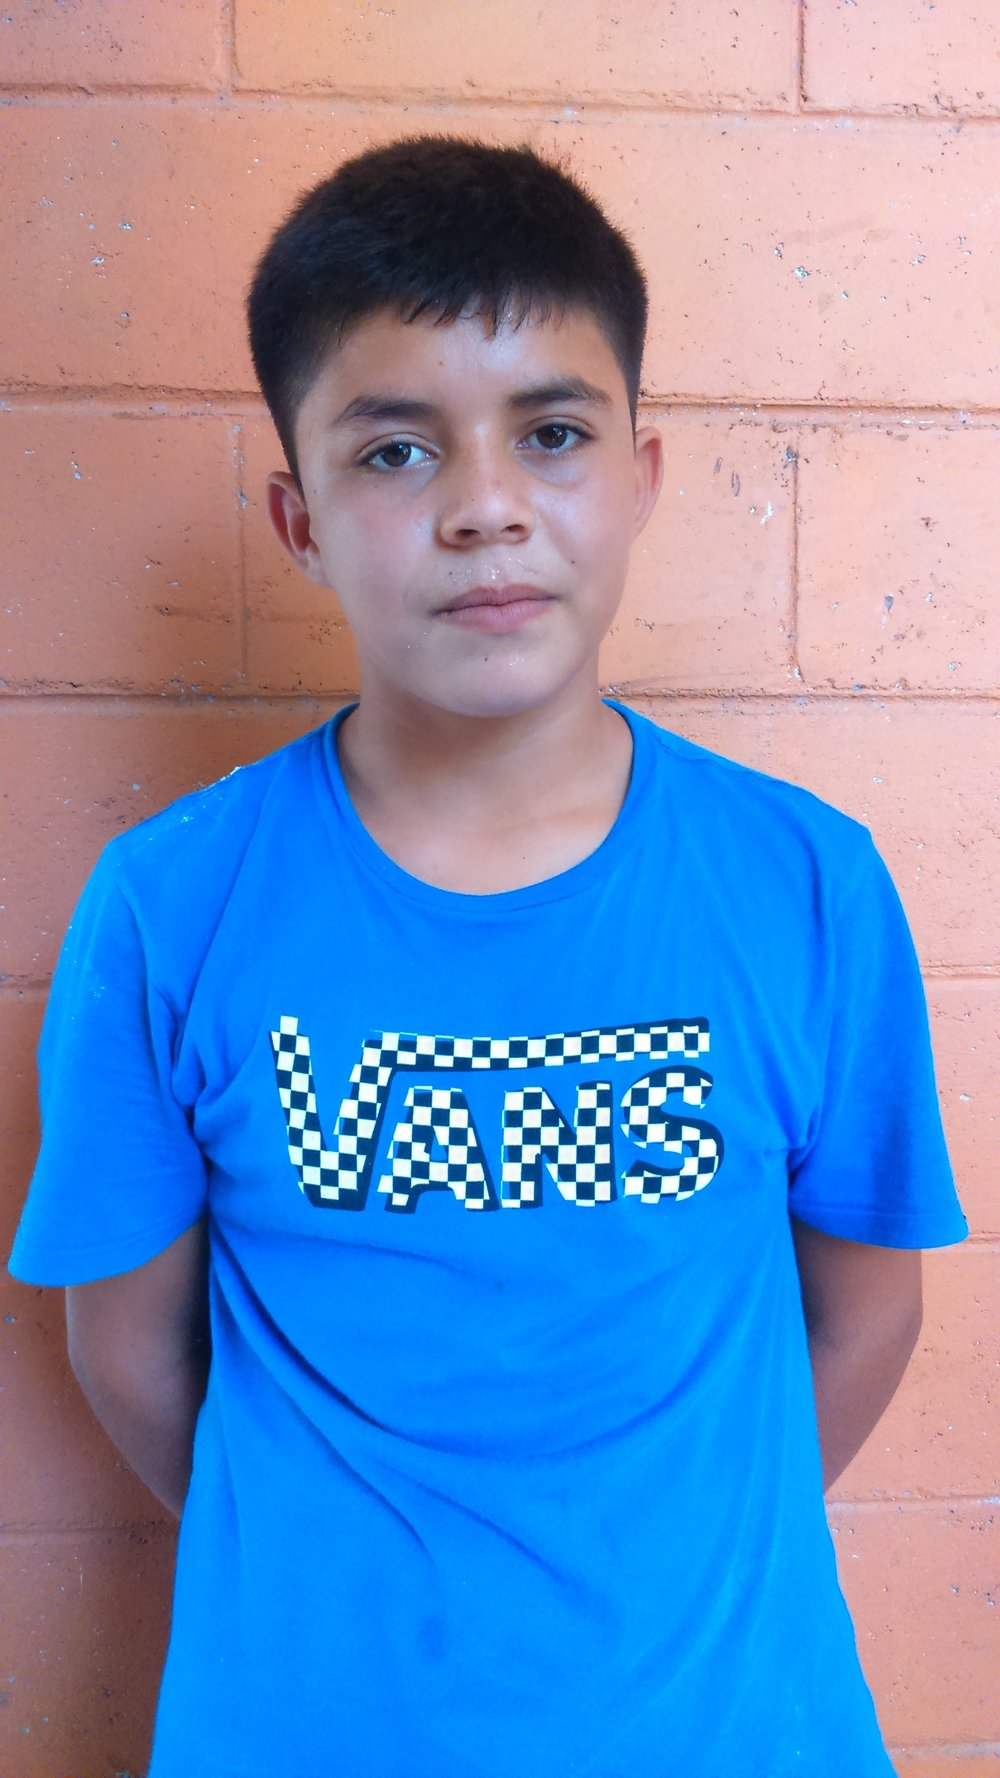 Brayan Javier Servellon Cubias - In his first year of study at San Rafael Obrajuelo, Brayan'sstudies are focused on Accounting and he is scheduled to graduate in 2020.Courses and Grades· Language and Literature= 67%· Mathematics= 57%· Natural Sciences= 70%· Social Studies & Civics= 60%· Foreign Language= 60%· Overall Cumulative Average= 62%